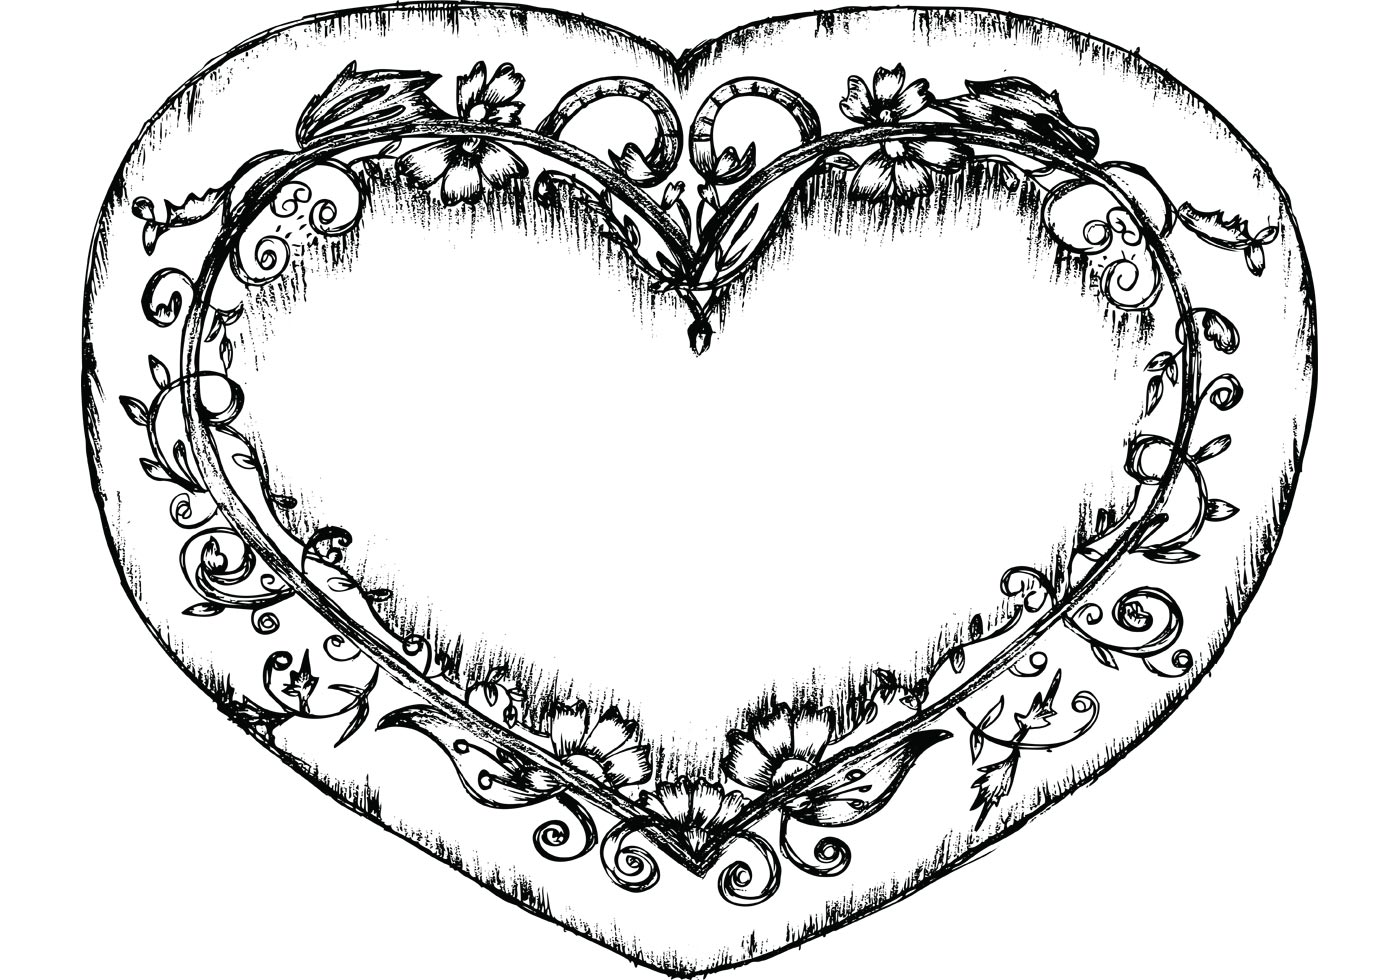 Lovely Sketchy Hand Drawn Heart Free Vector Illustration